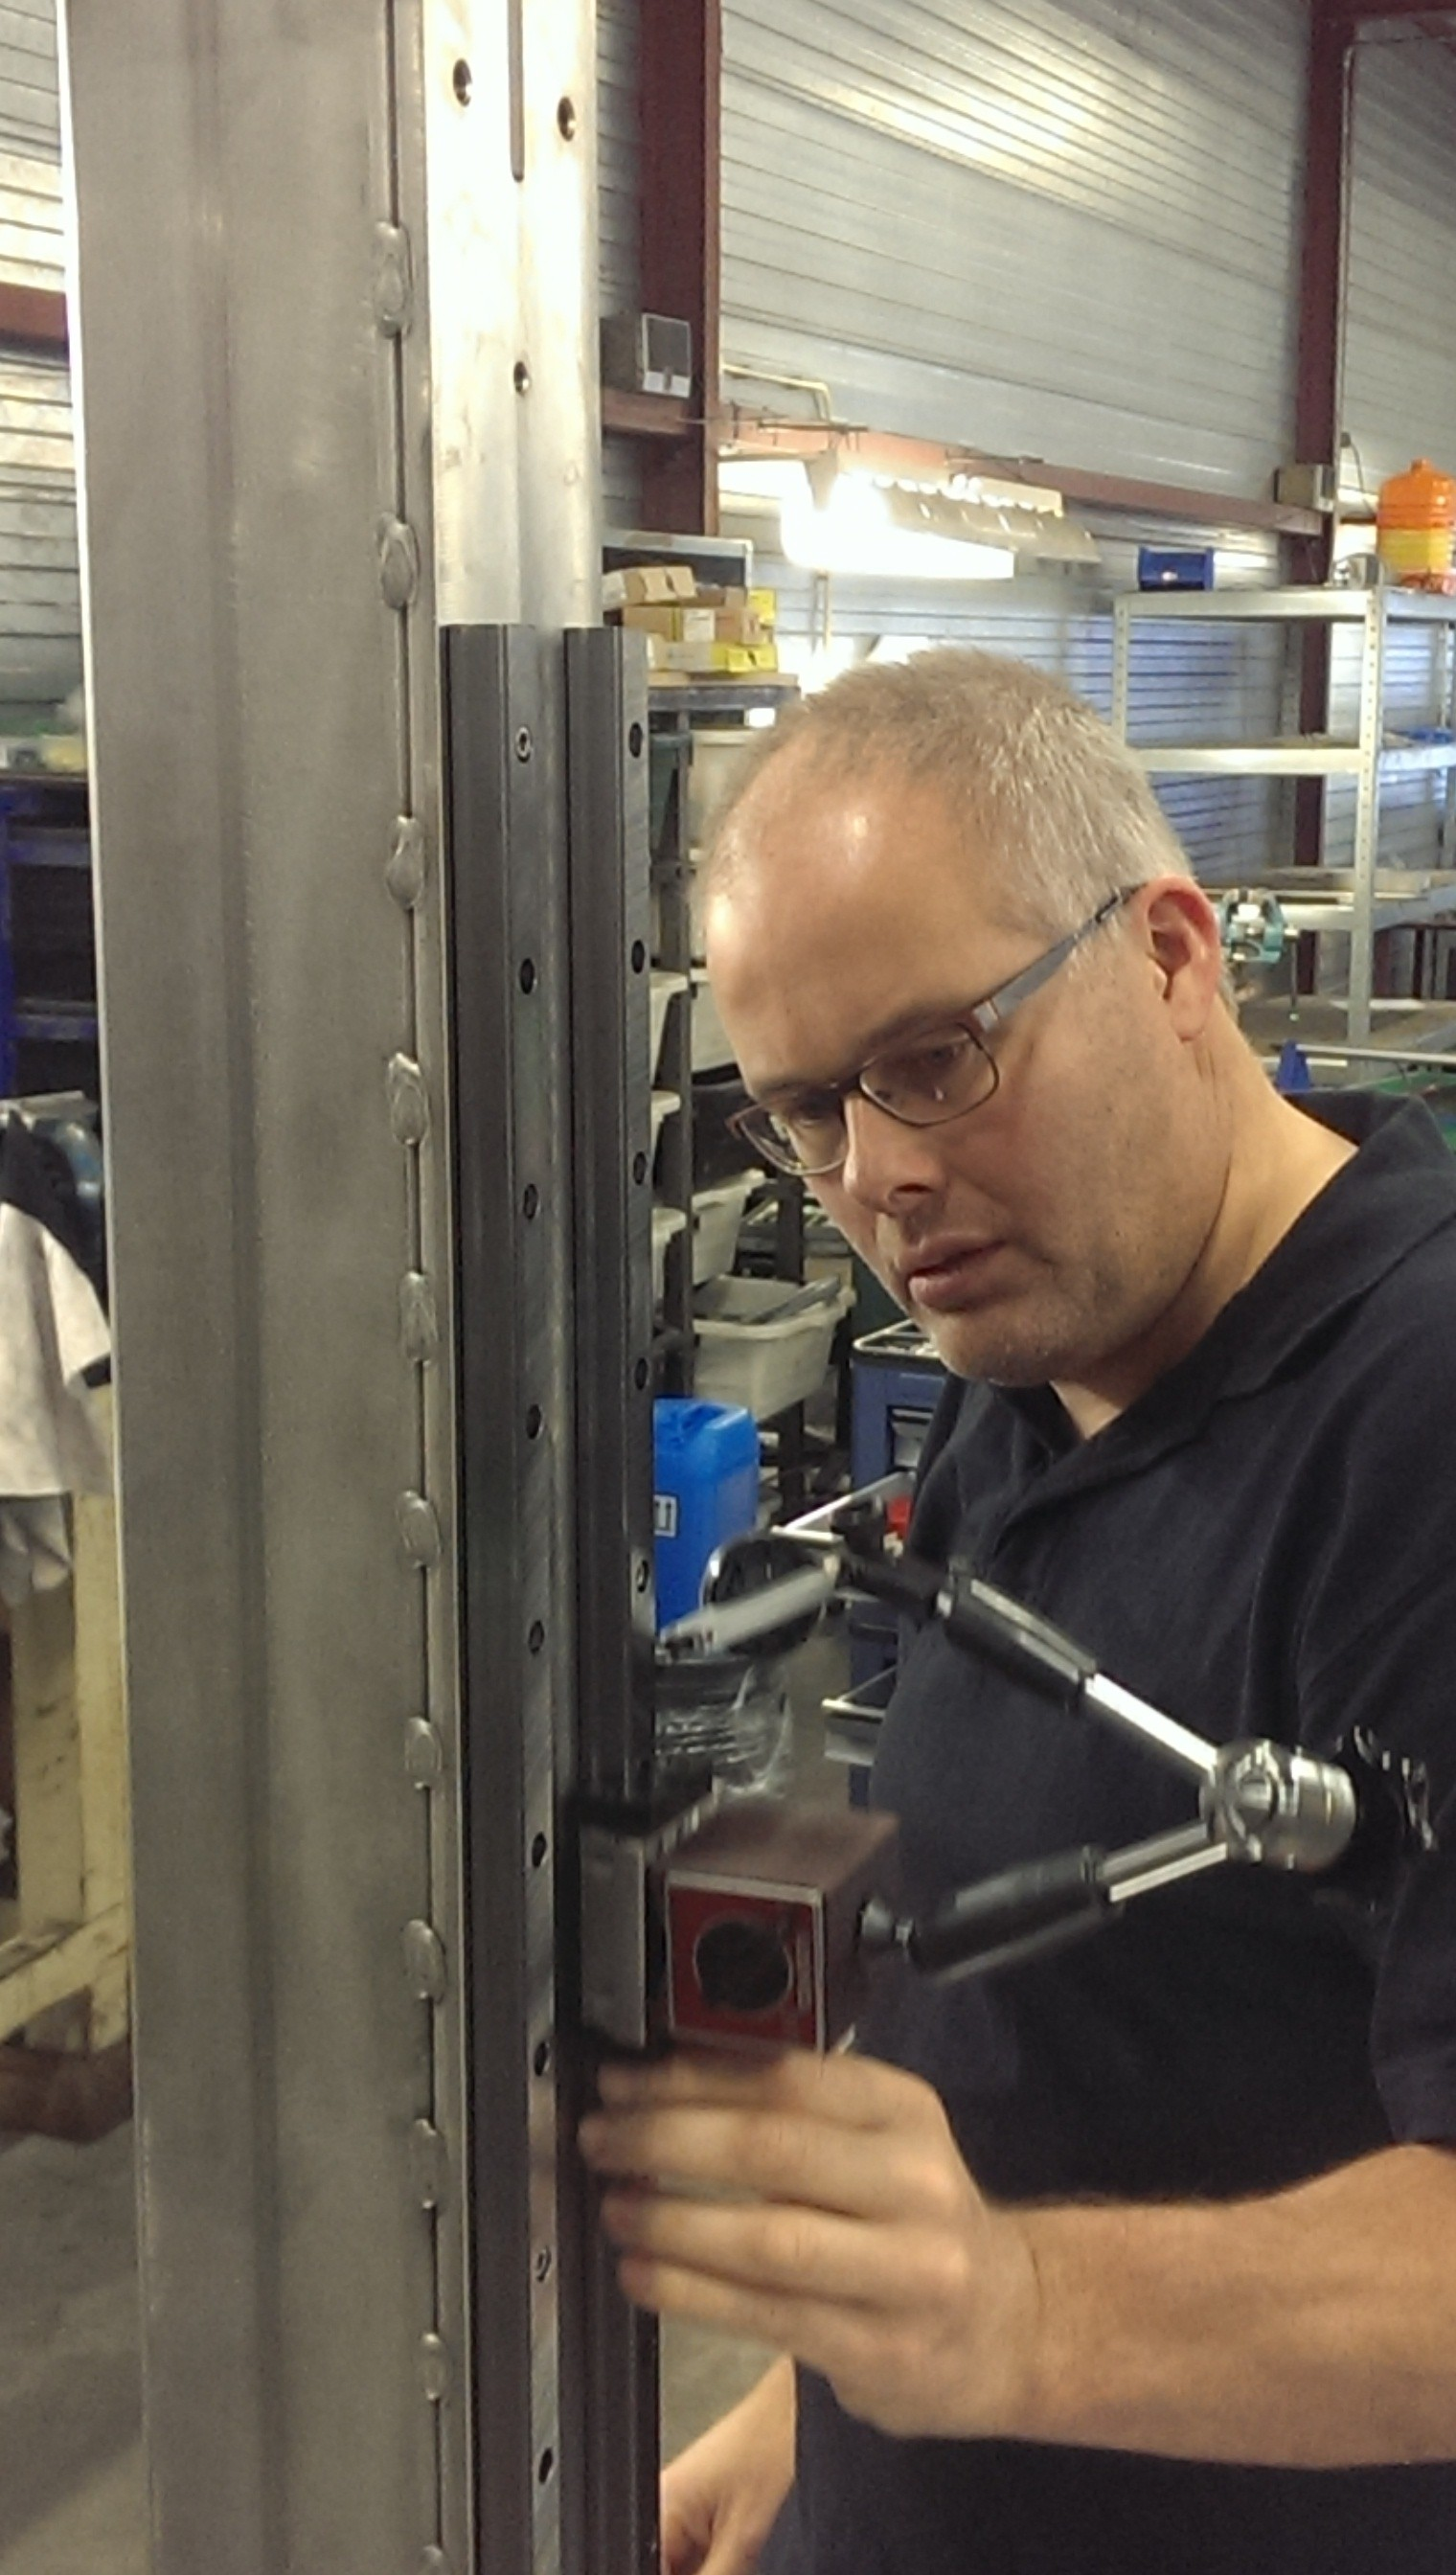 Stefan eliminats disalignment in the build of a stretch sleever system for the French market.